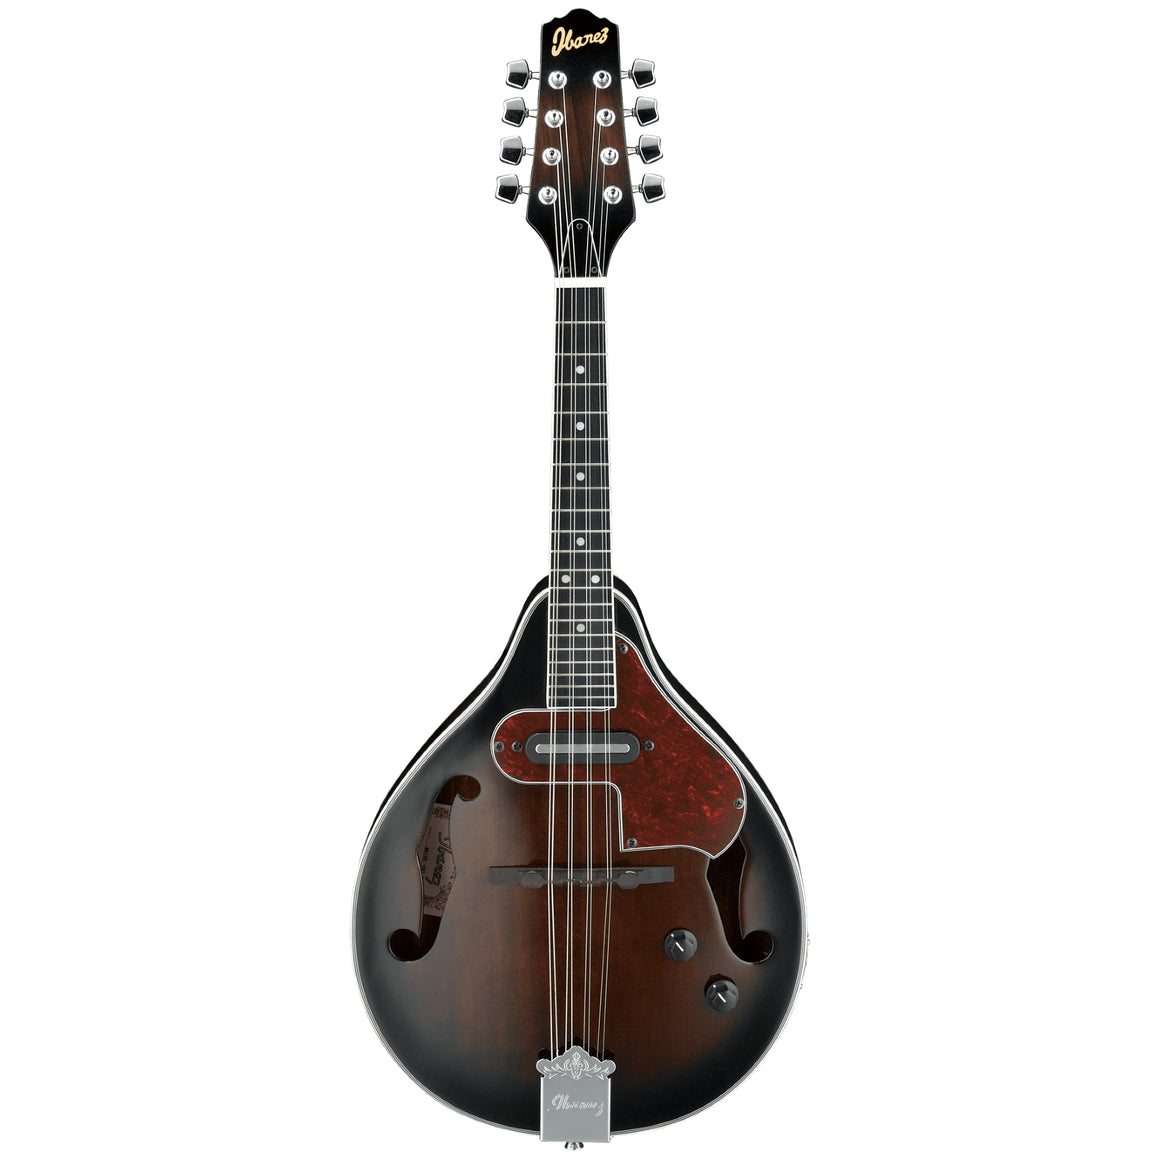 Ibanez M510 A-Style Electric Mandolin - Dark Violin Sunburst